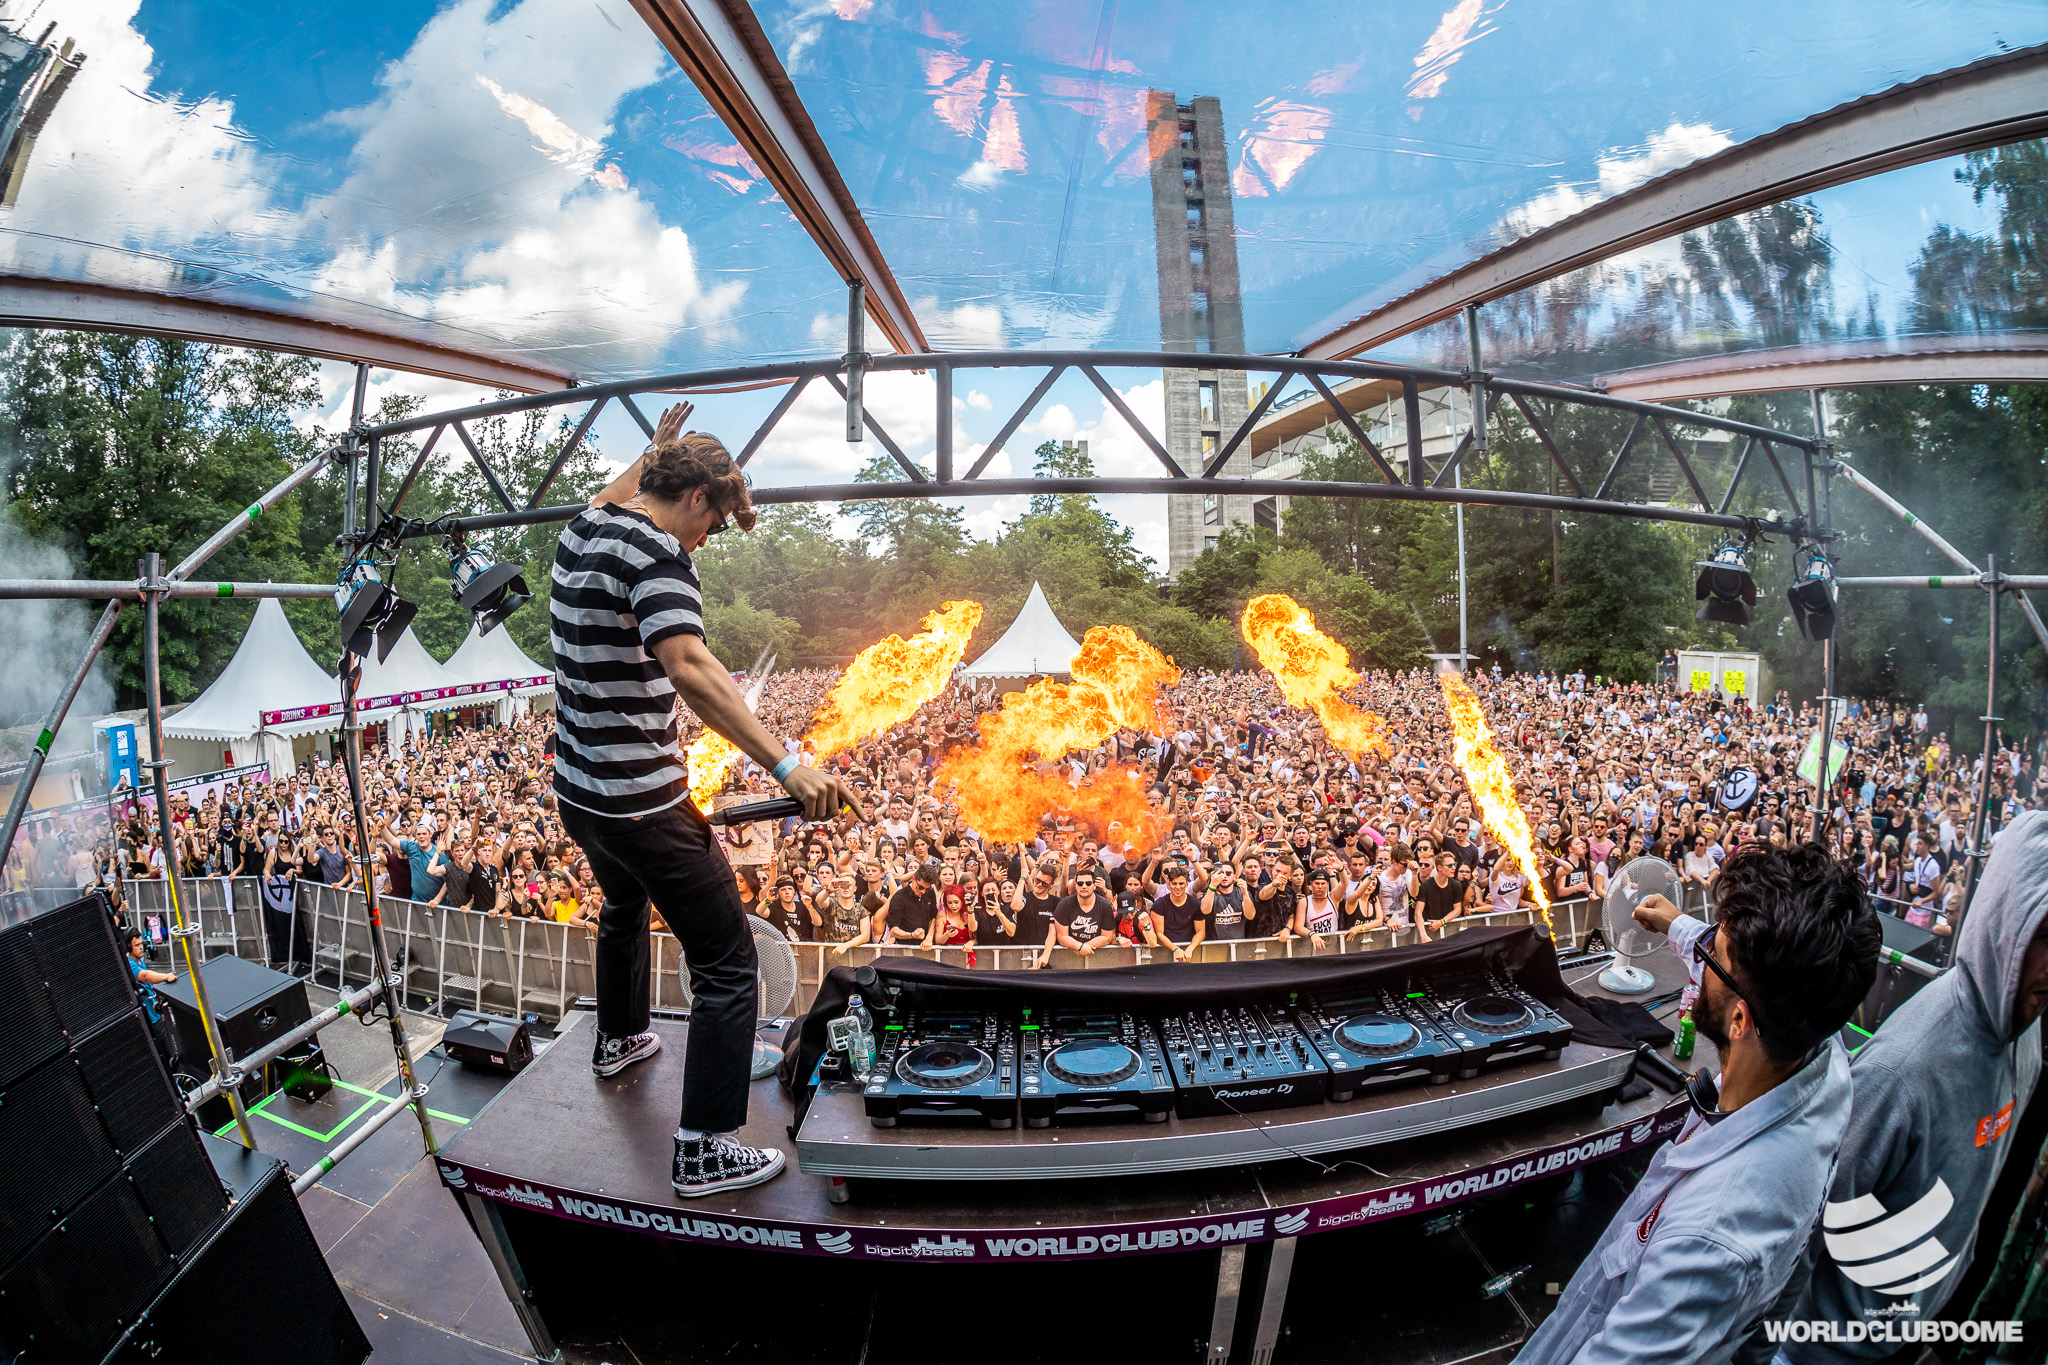 BigCityBeats WORLD CLUB DOME 2019: The New Outdoor Mainstage